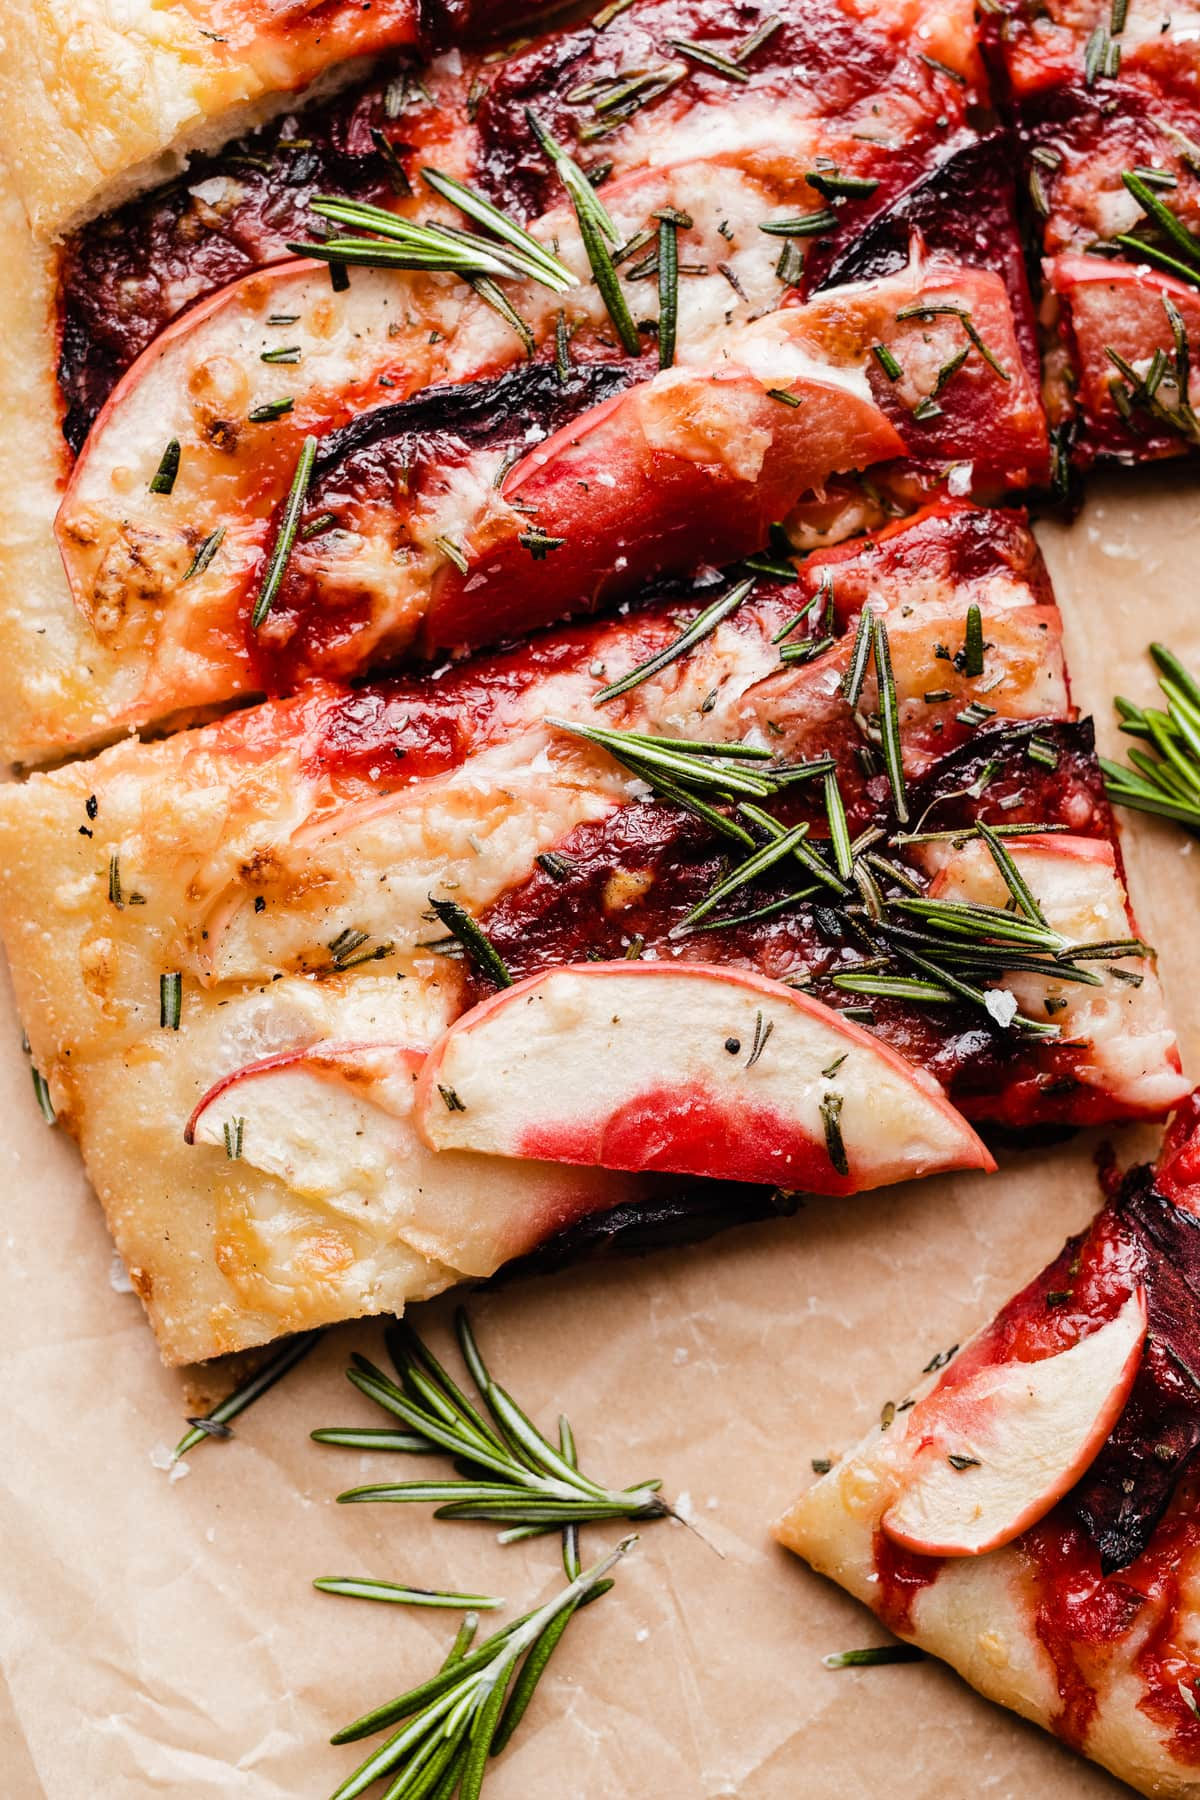 Apple Pizza with Beets and Cheddar